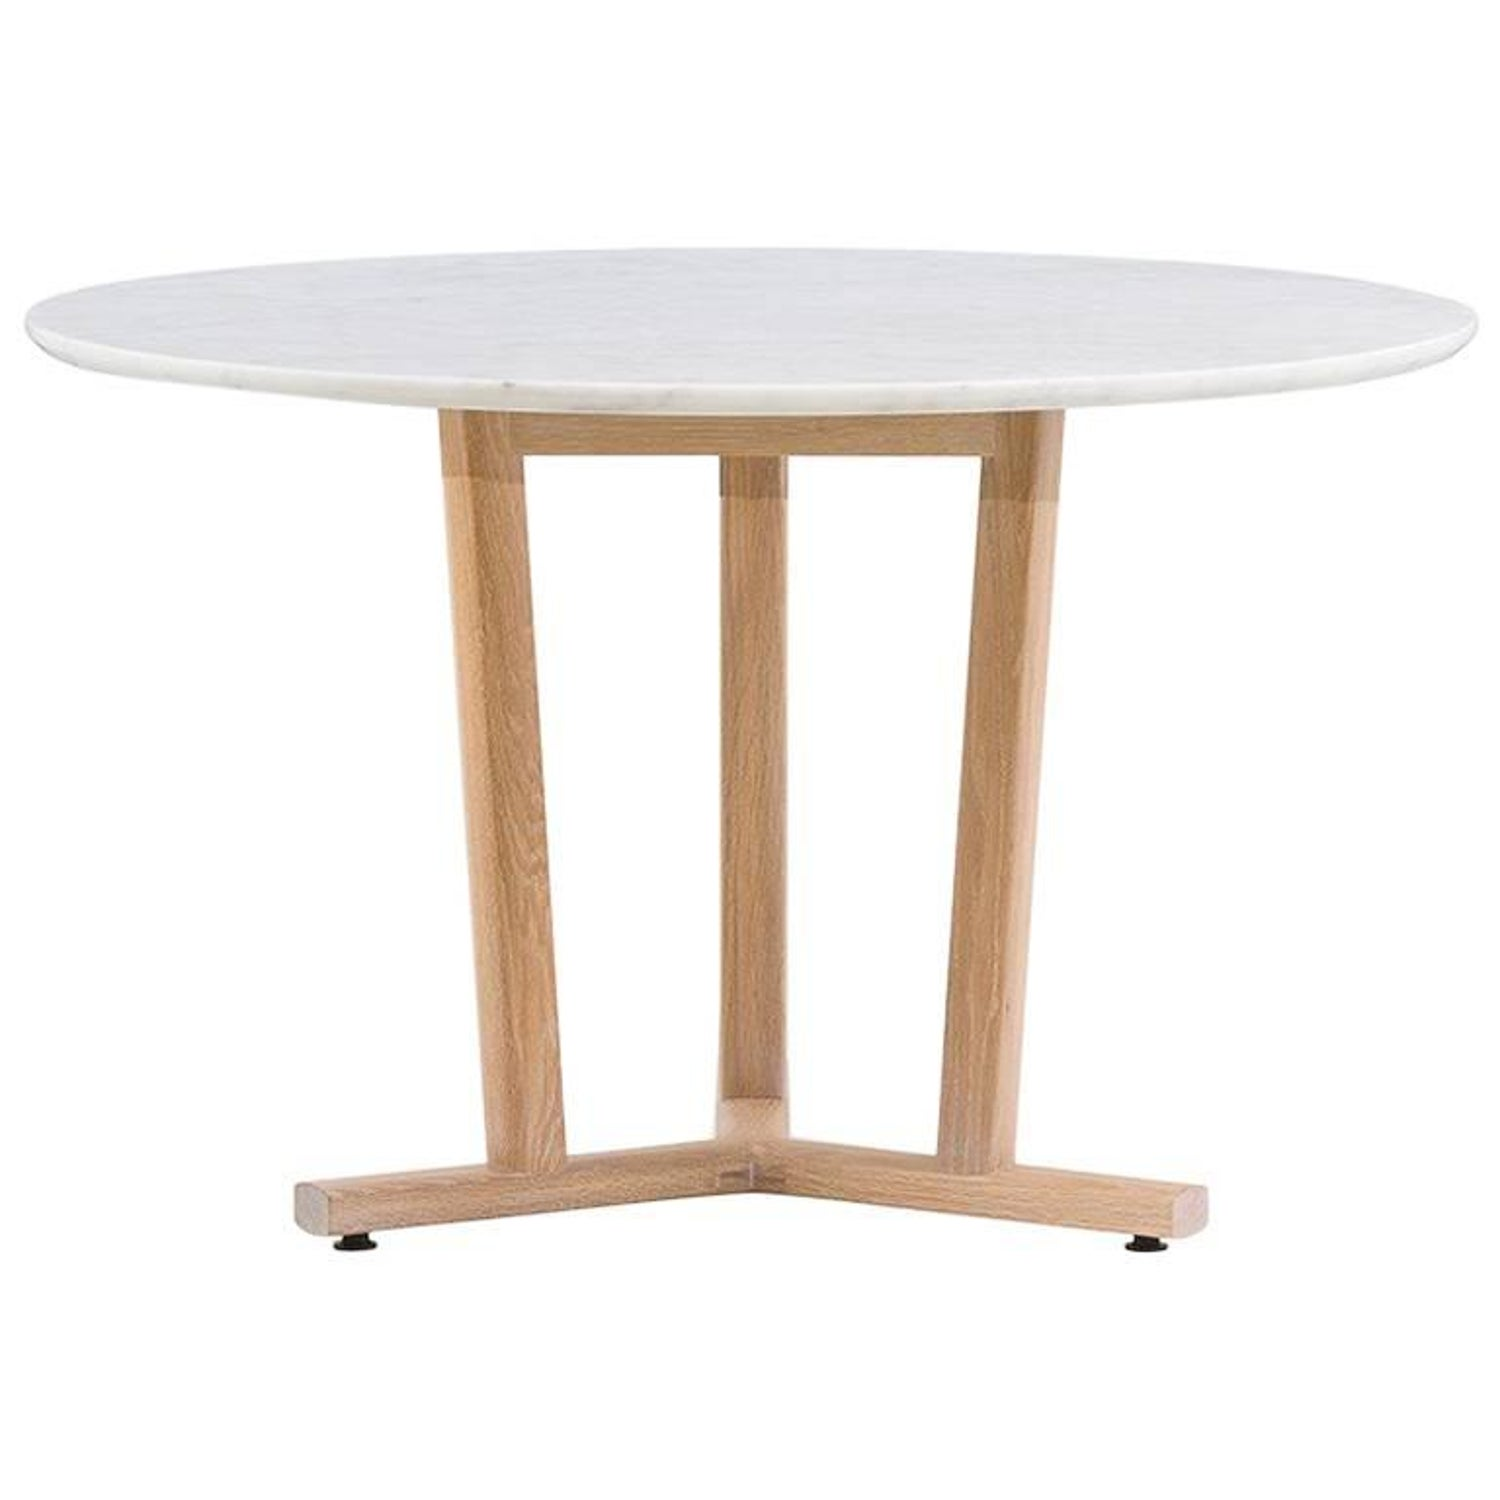 Neri and Hu for De La Espada Round Shaker Dining Table Marble